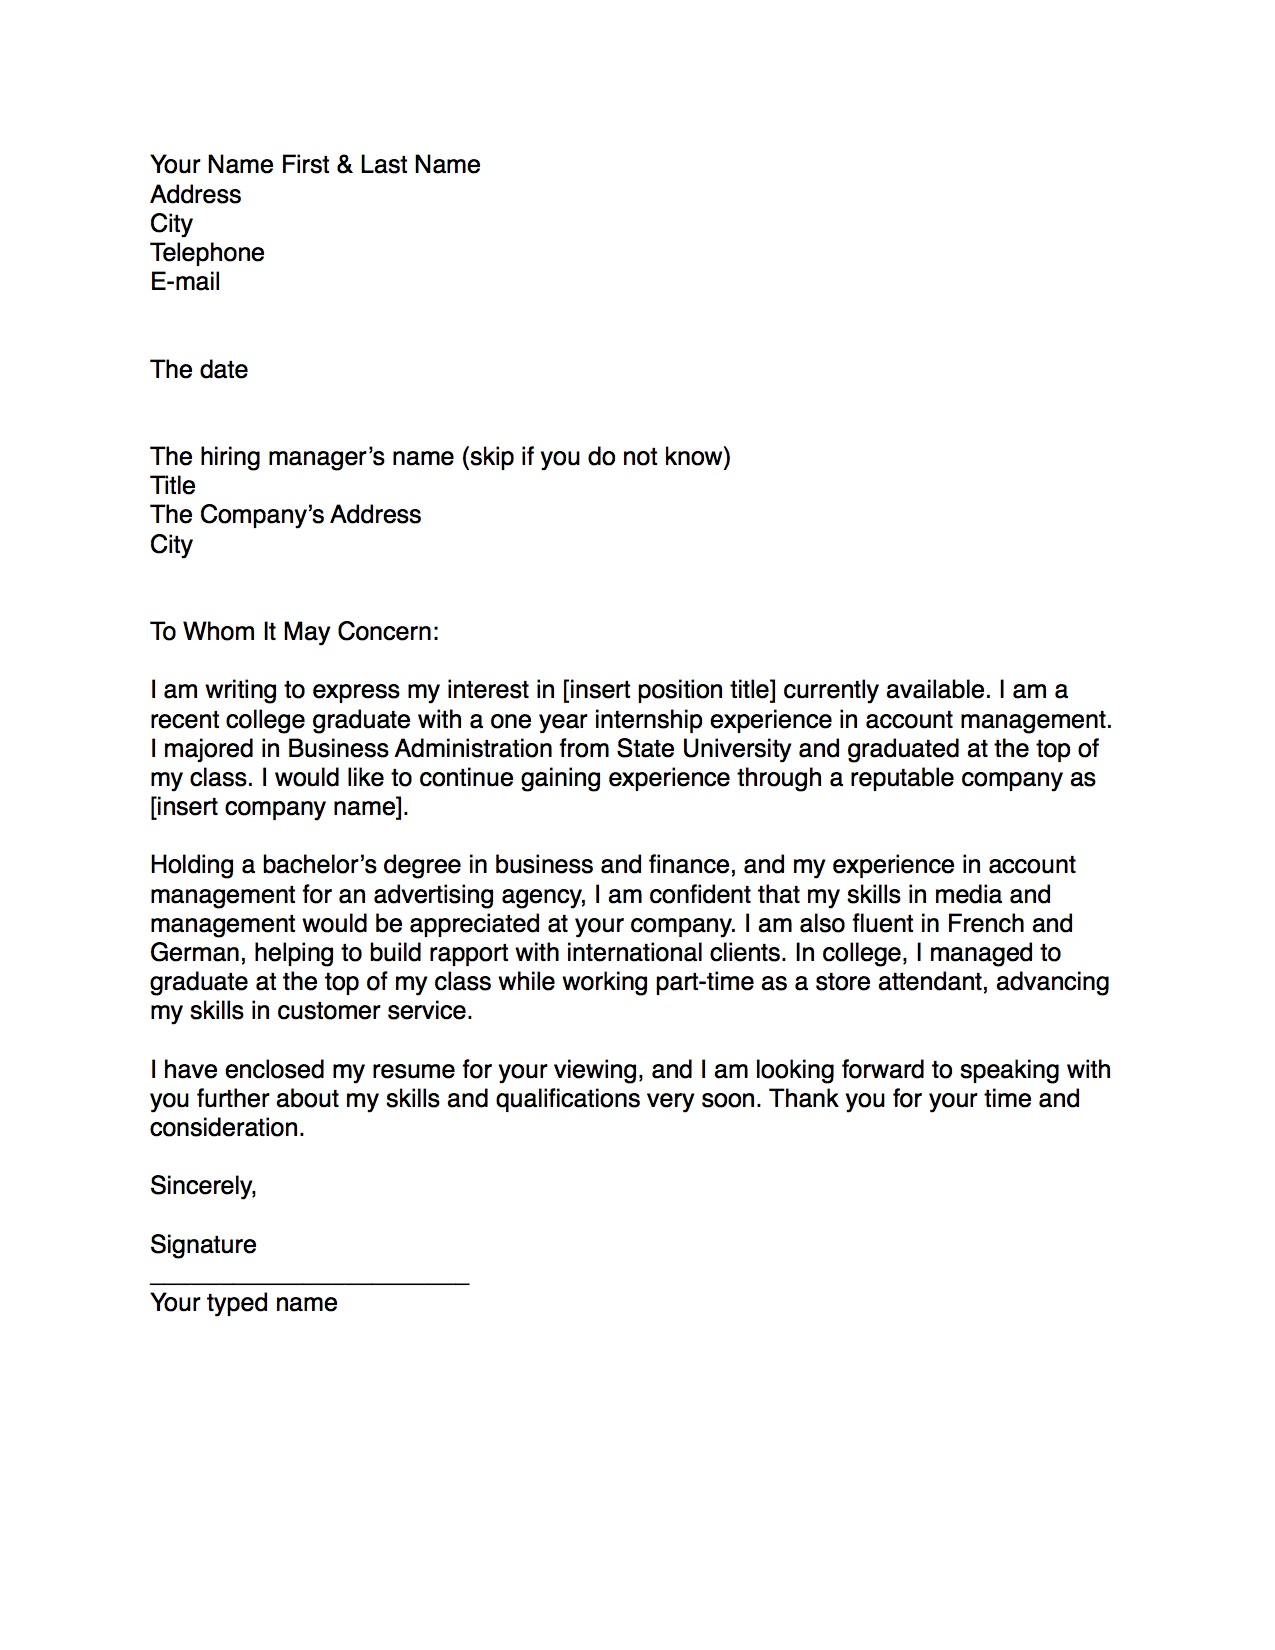 cover letter salutation unknown recipient writing a letter to an ...